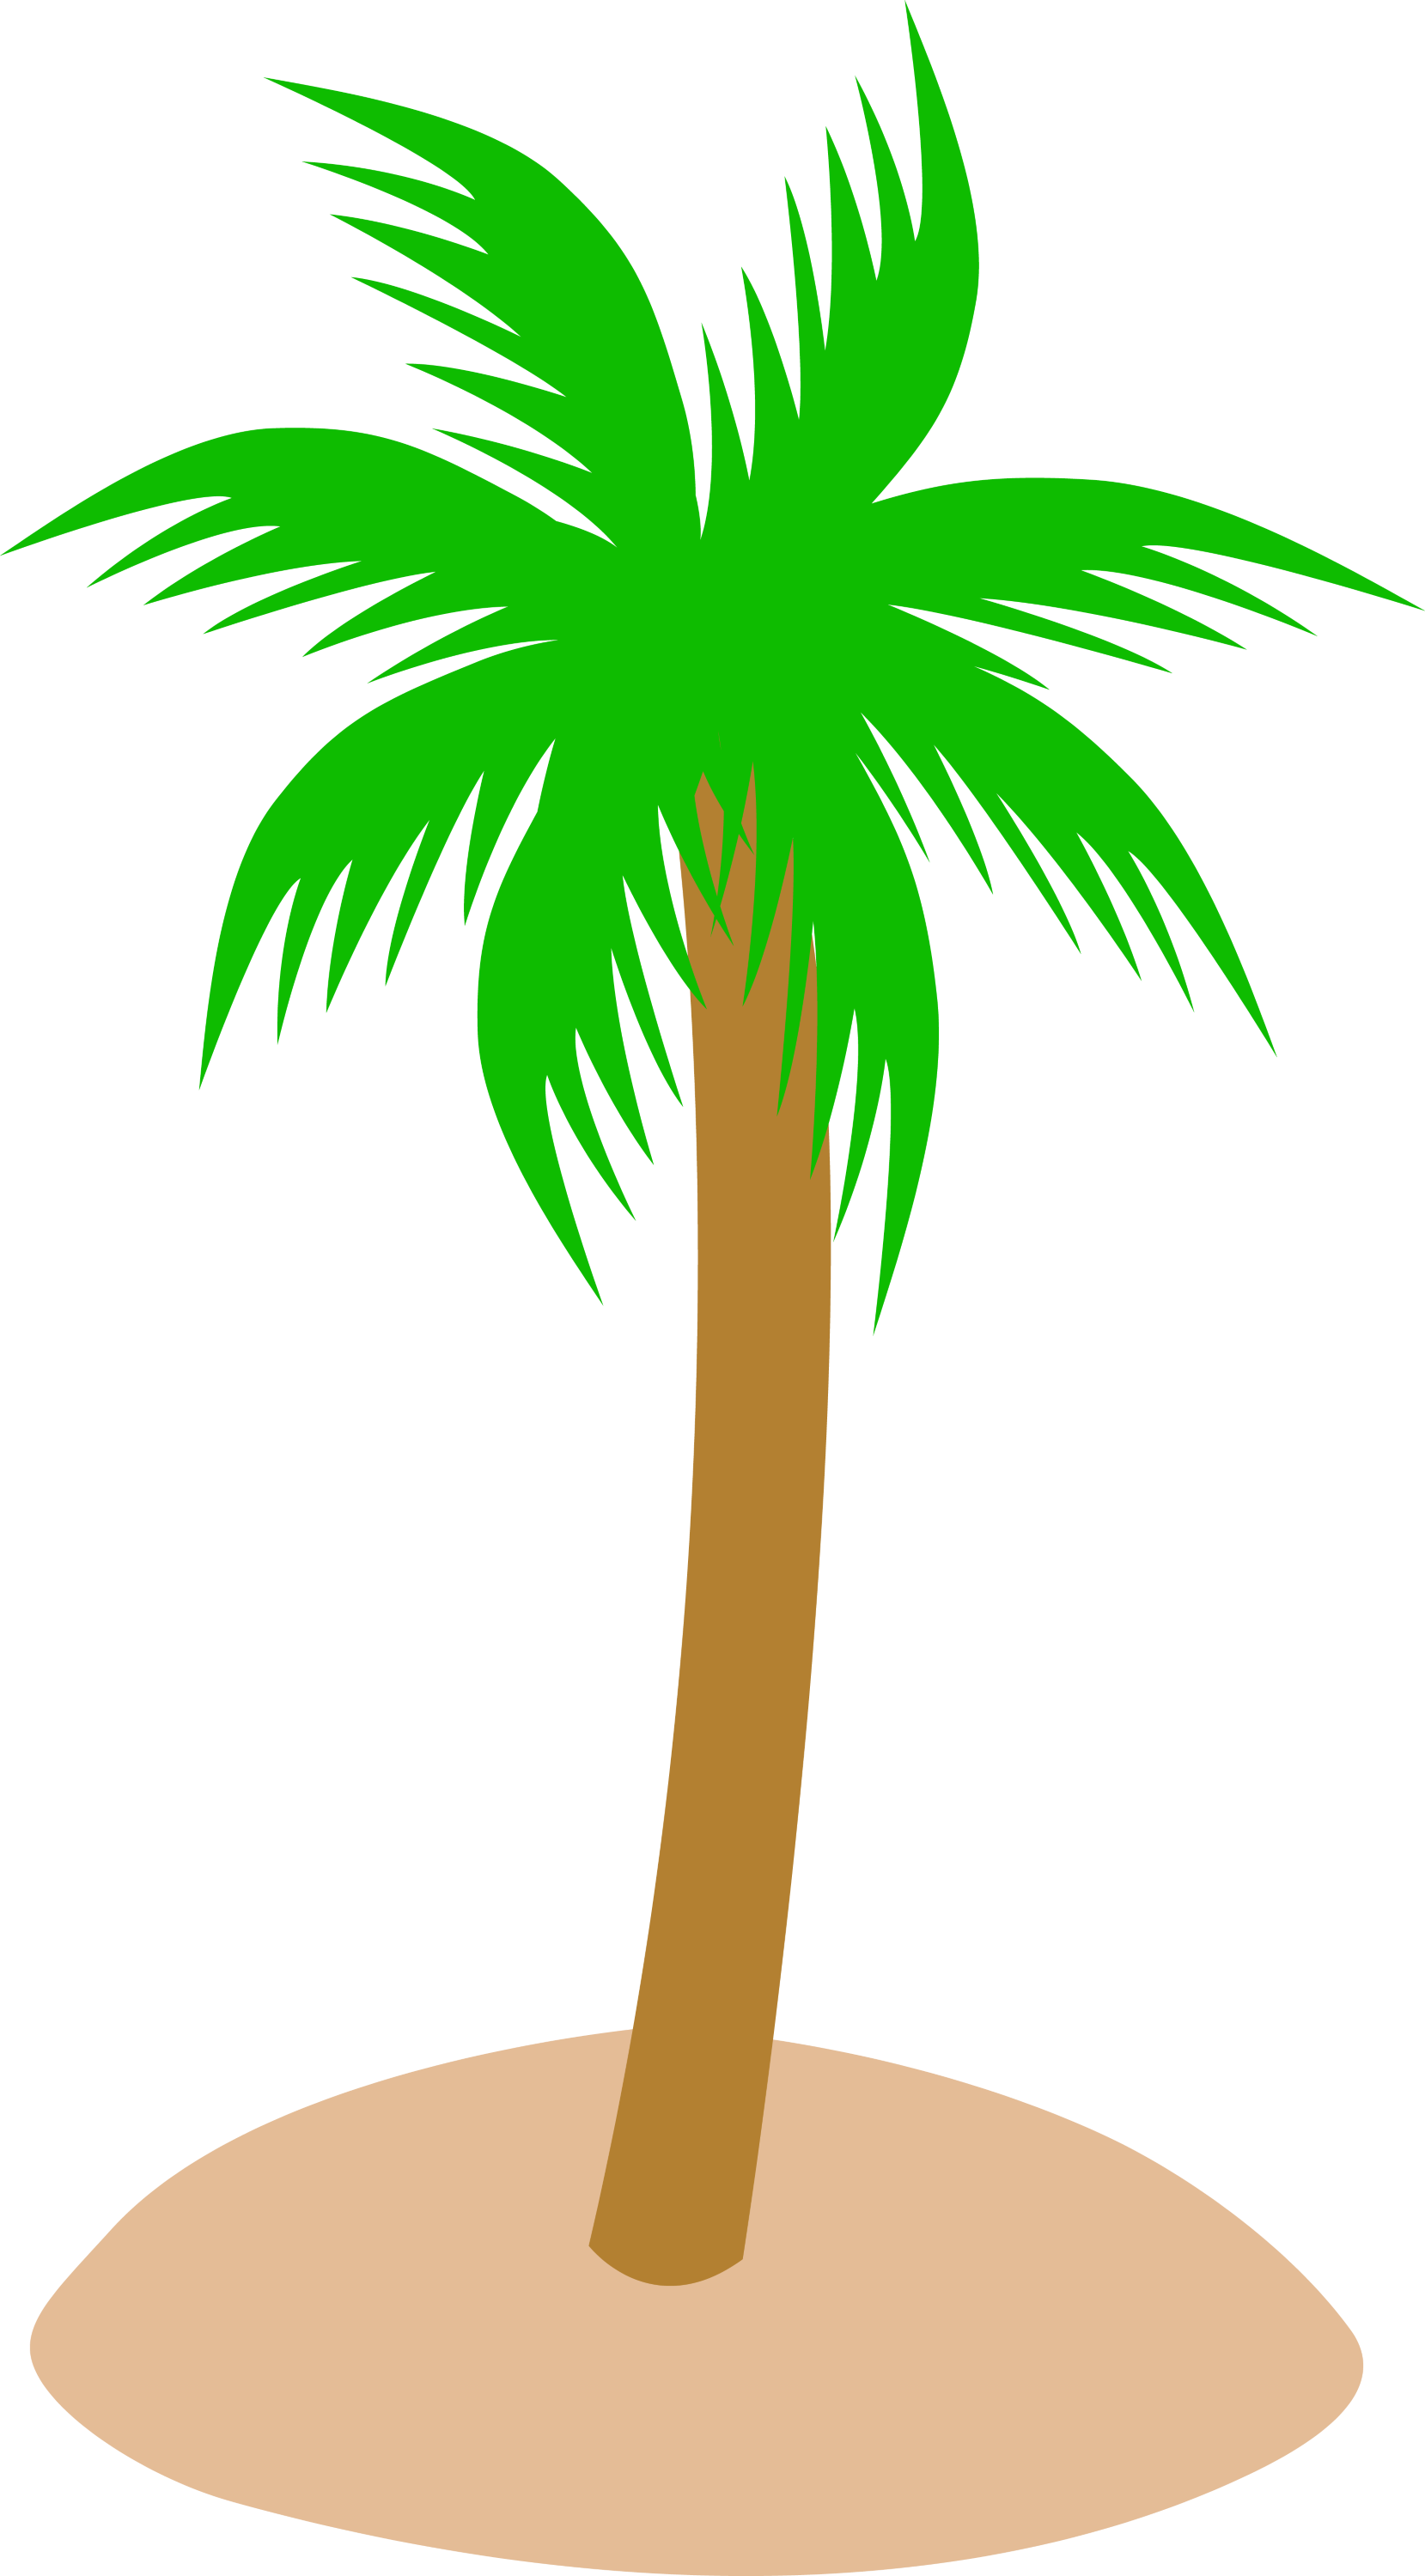 palm tree clip art - photo #10